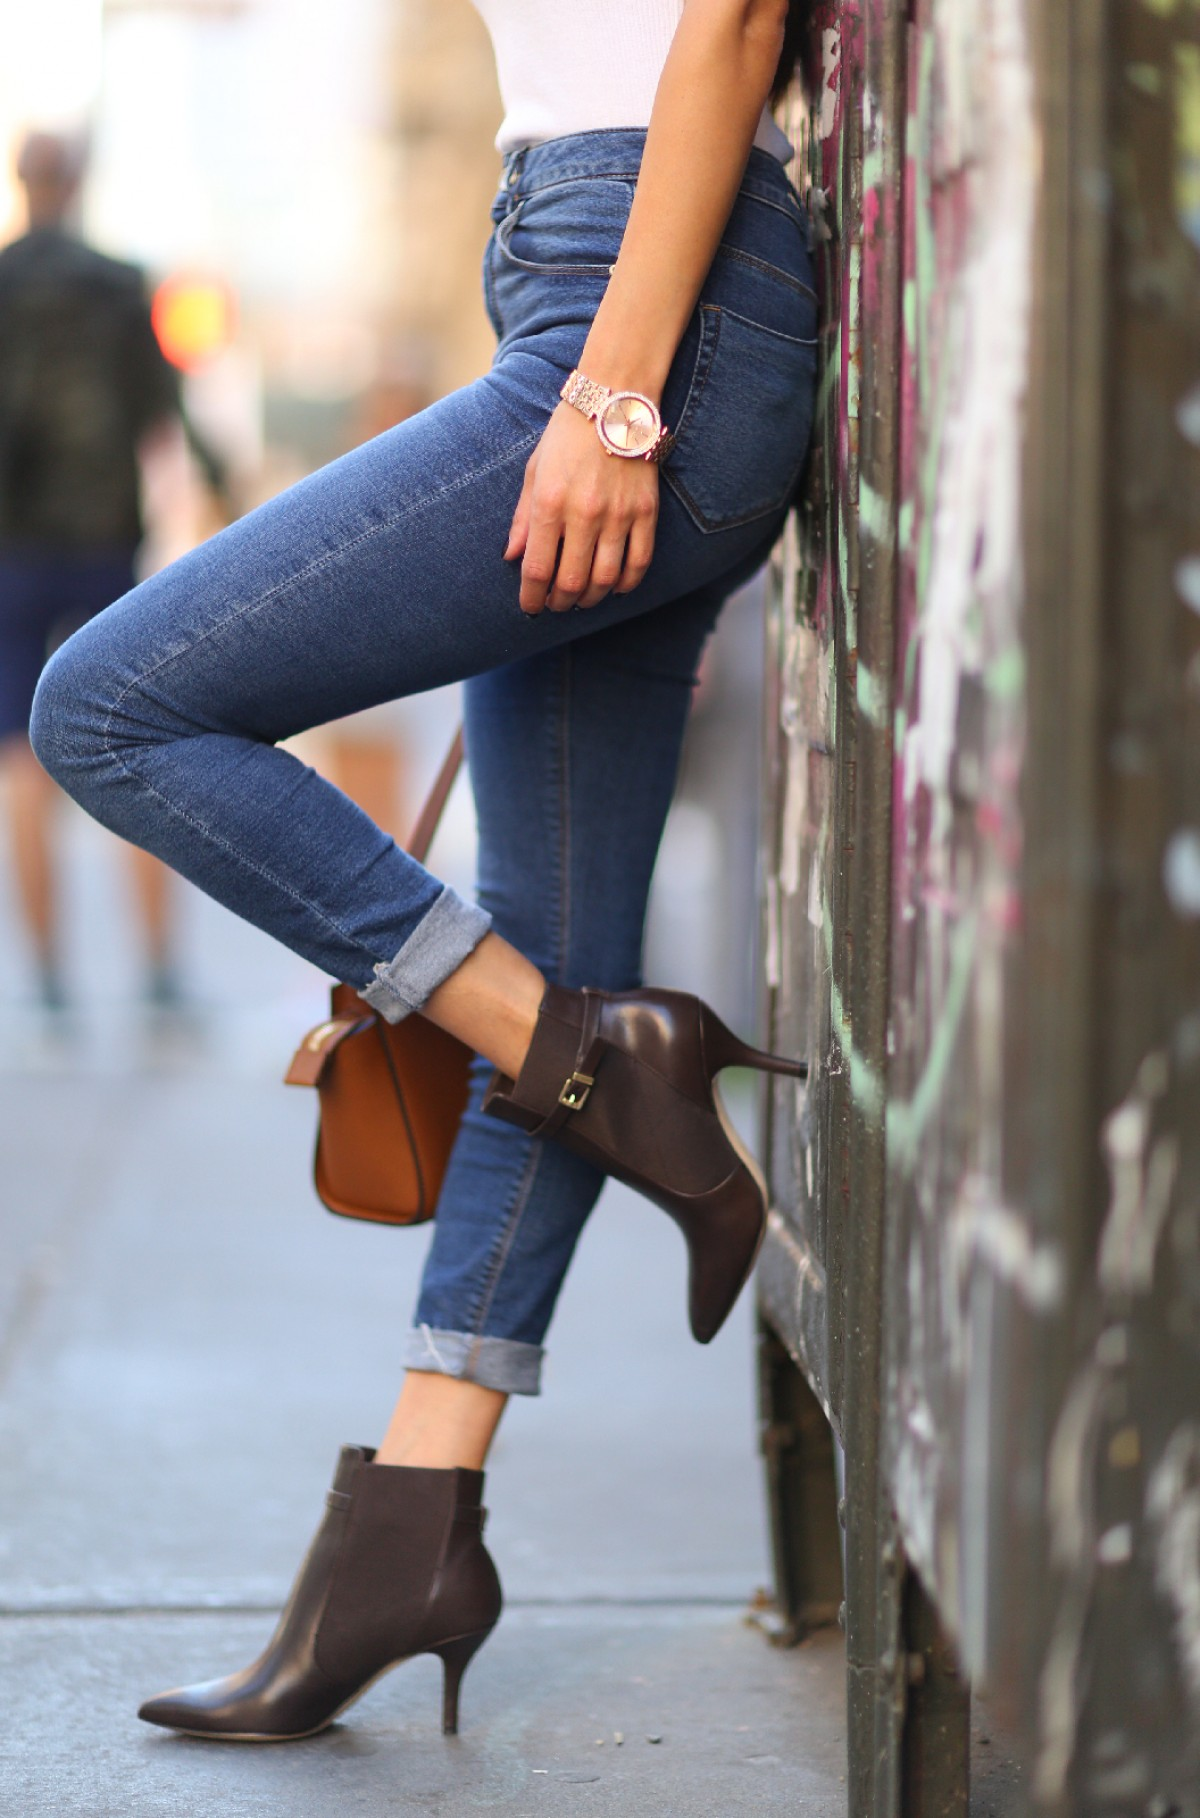 Shop each type of flat shoes I swear by when wearing skinny jeans below. Flat Ankle Boots This style works best with either cropped skinny jeans or boots with a wide enough opening to fit over the jeans without making them bunch up.